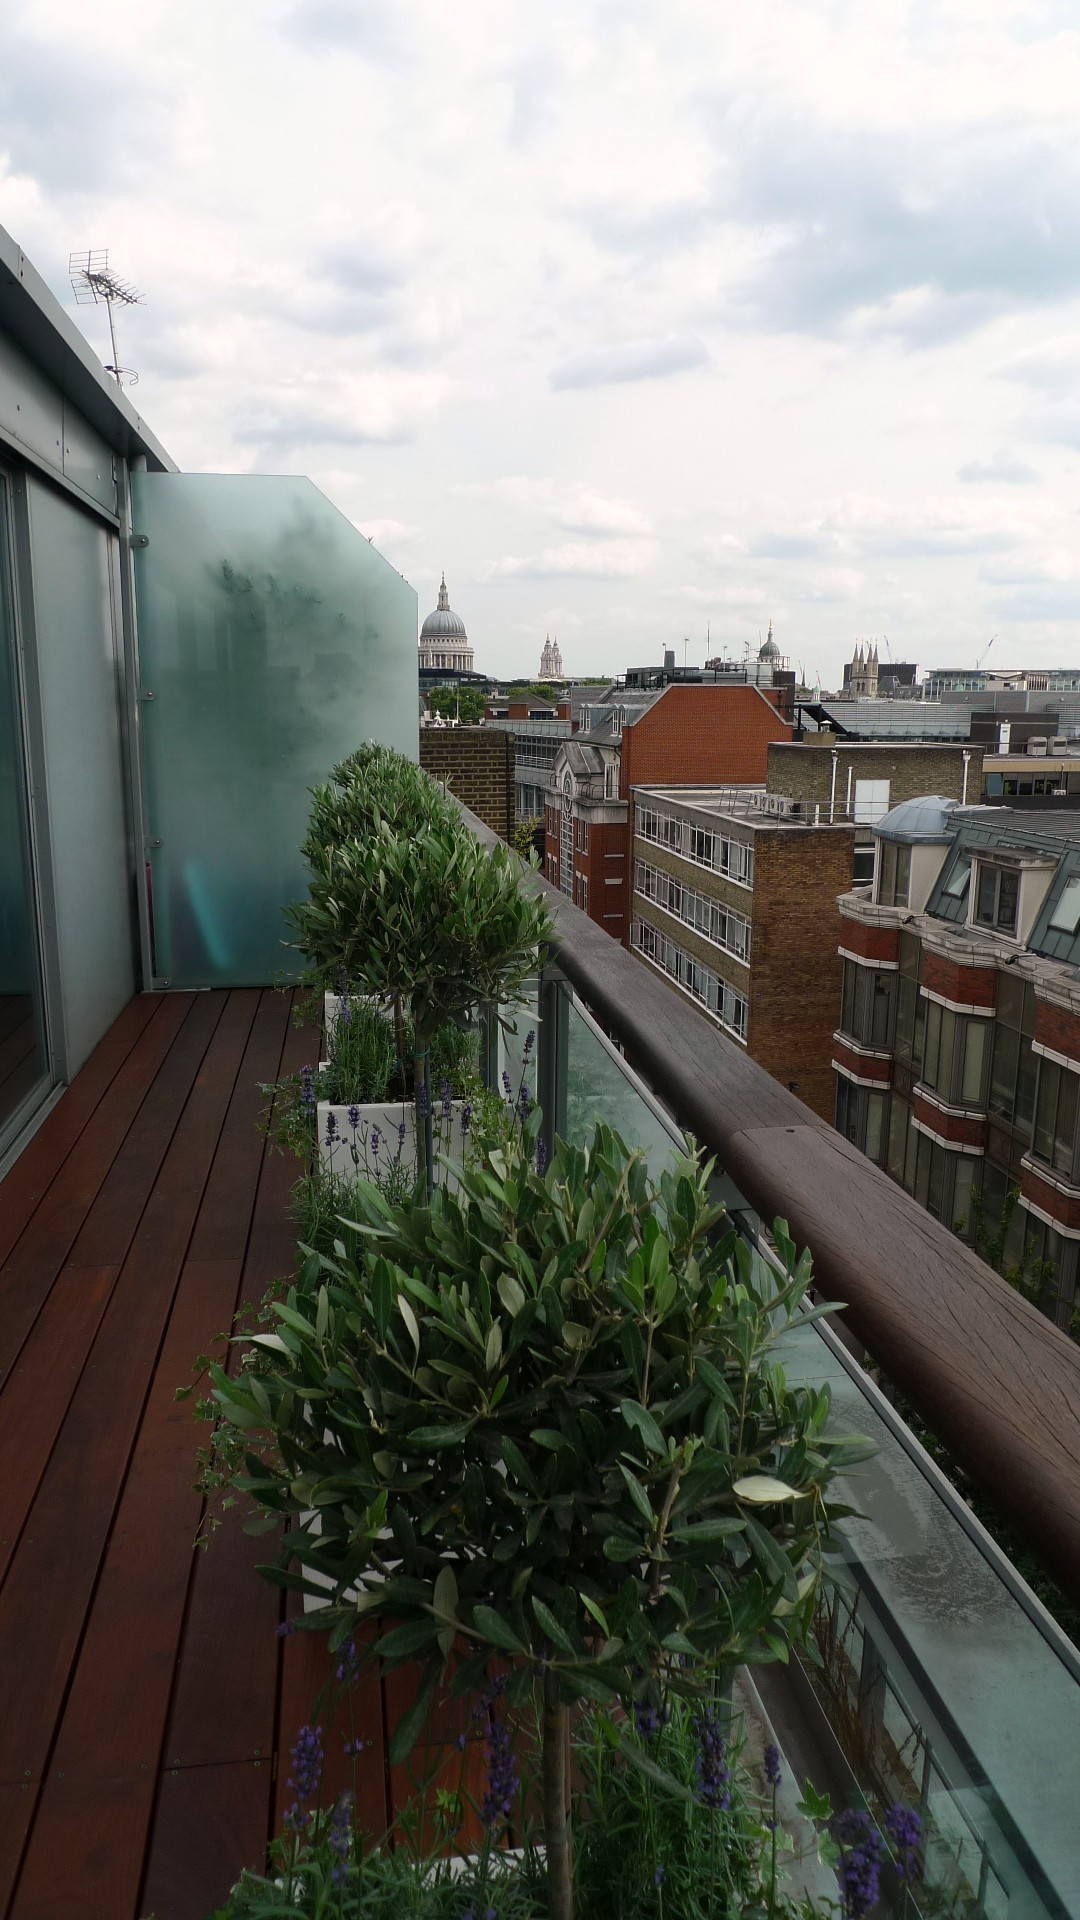 Ipe brazillian hardwood deck decking installation builders garden designers islington central london roof garden (11)